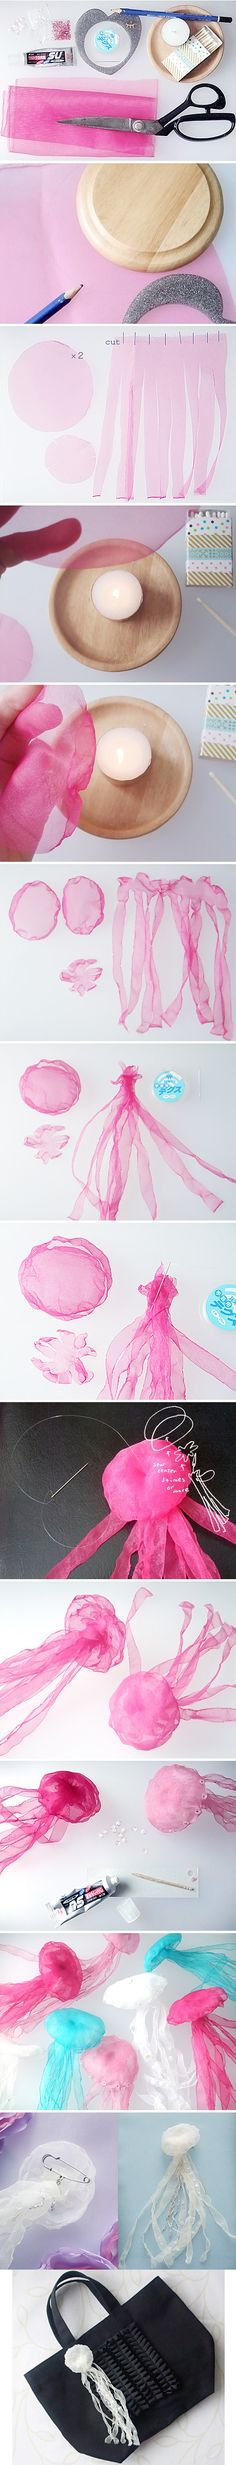 Creative party theme ideas for your kids next Birthday party! Jellyfish Decorations, Fiesta Decorations, Mermaid Baby Showers, Baby Mermaid, Little Mermaid Play, Glitter Room, Kawaii Room, Under The Sea Party, Theme Ideas